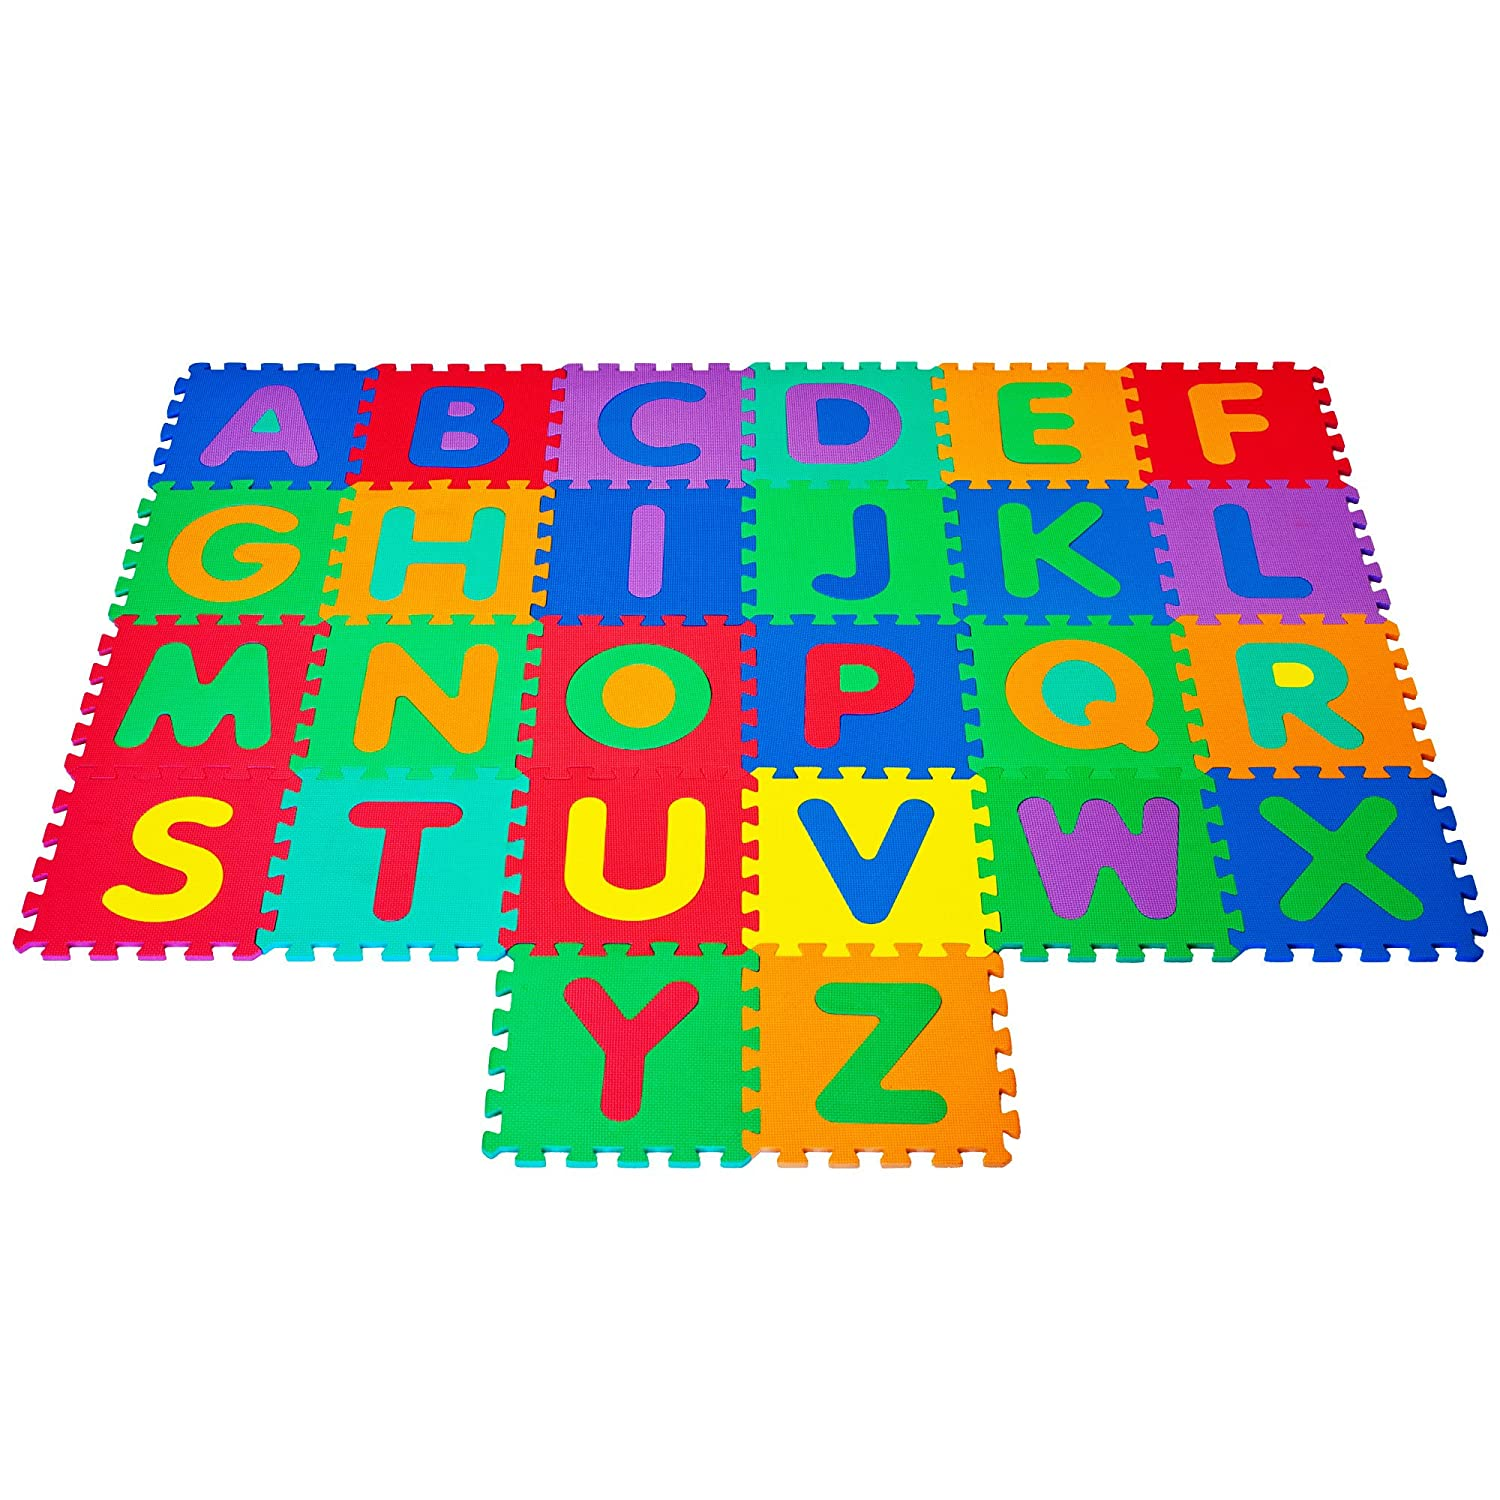 Hey Play Interlocking Foam Tile Play Mat with Letters Nontoxic Children's Multicolor Puzzle Tiles for Playrooms Nurseries Classrooms and More